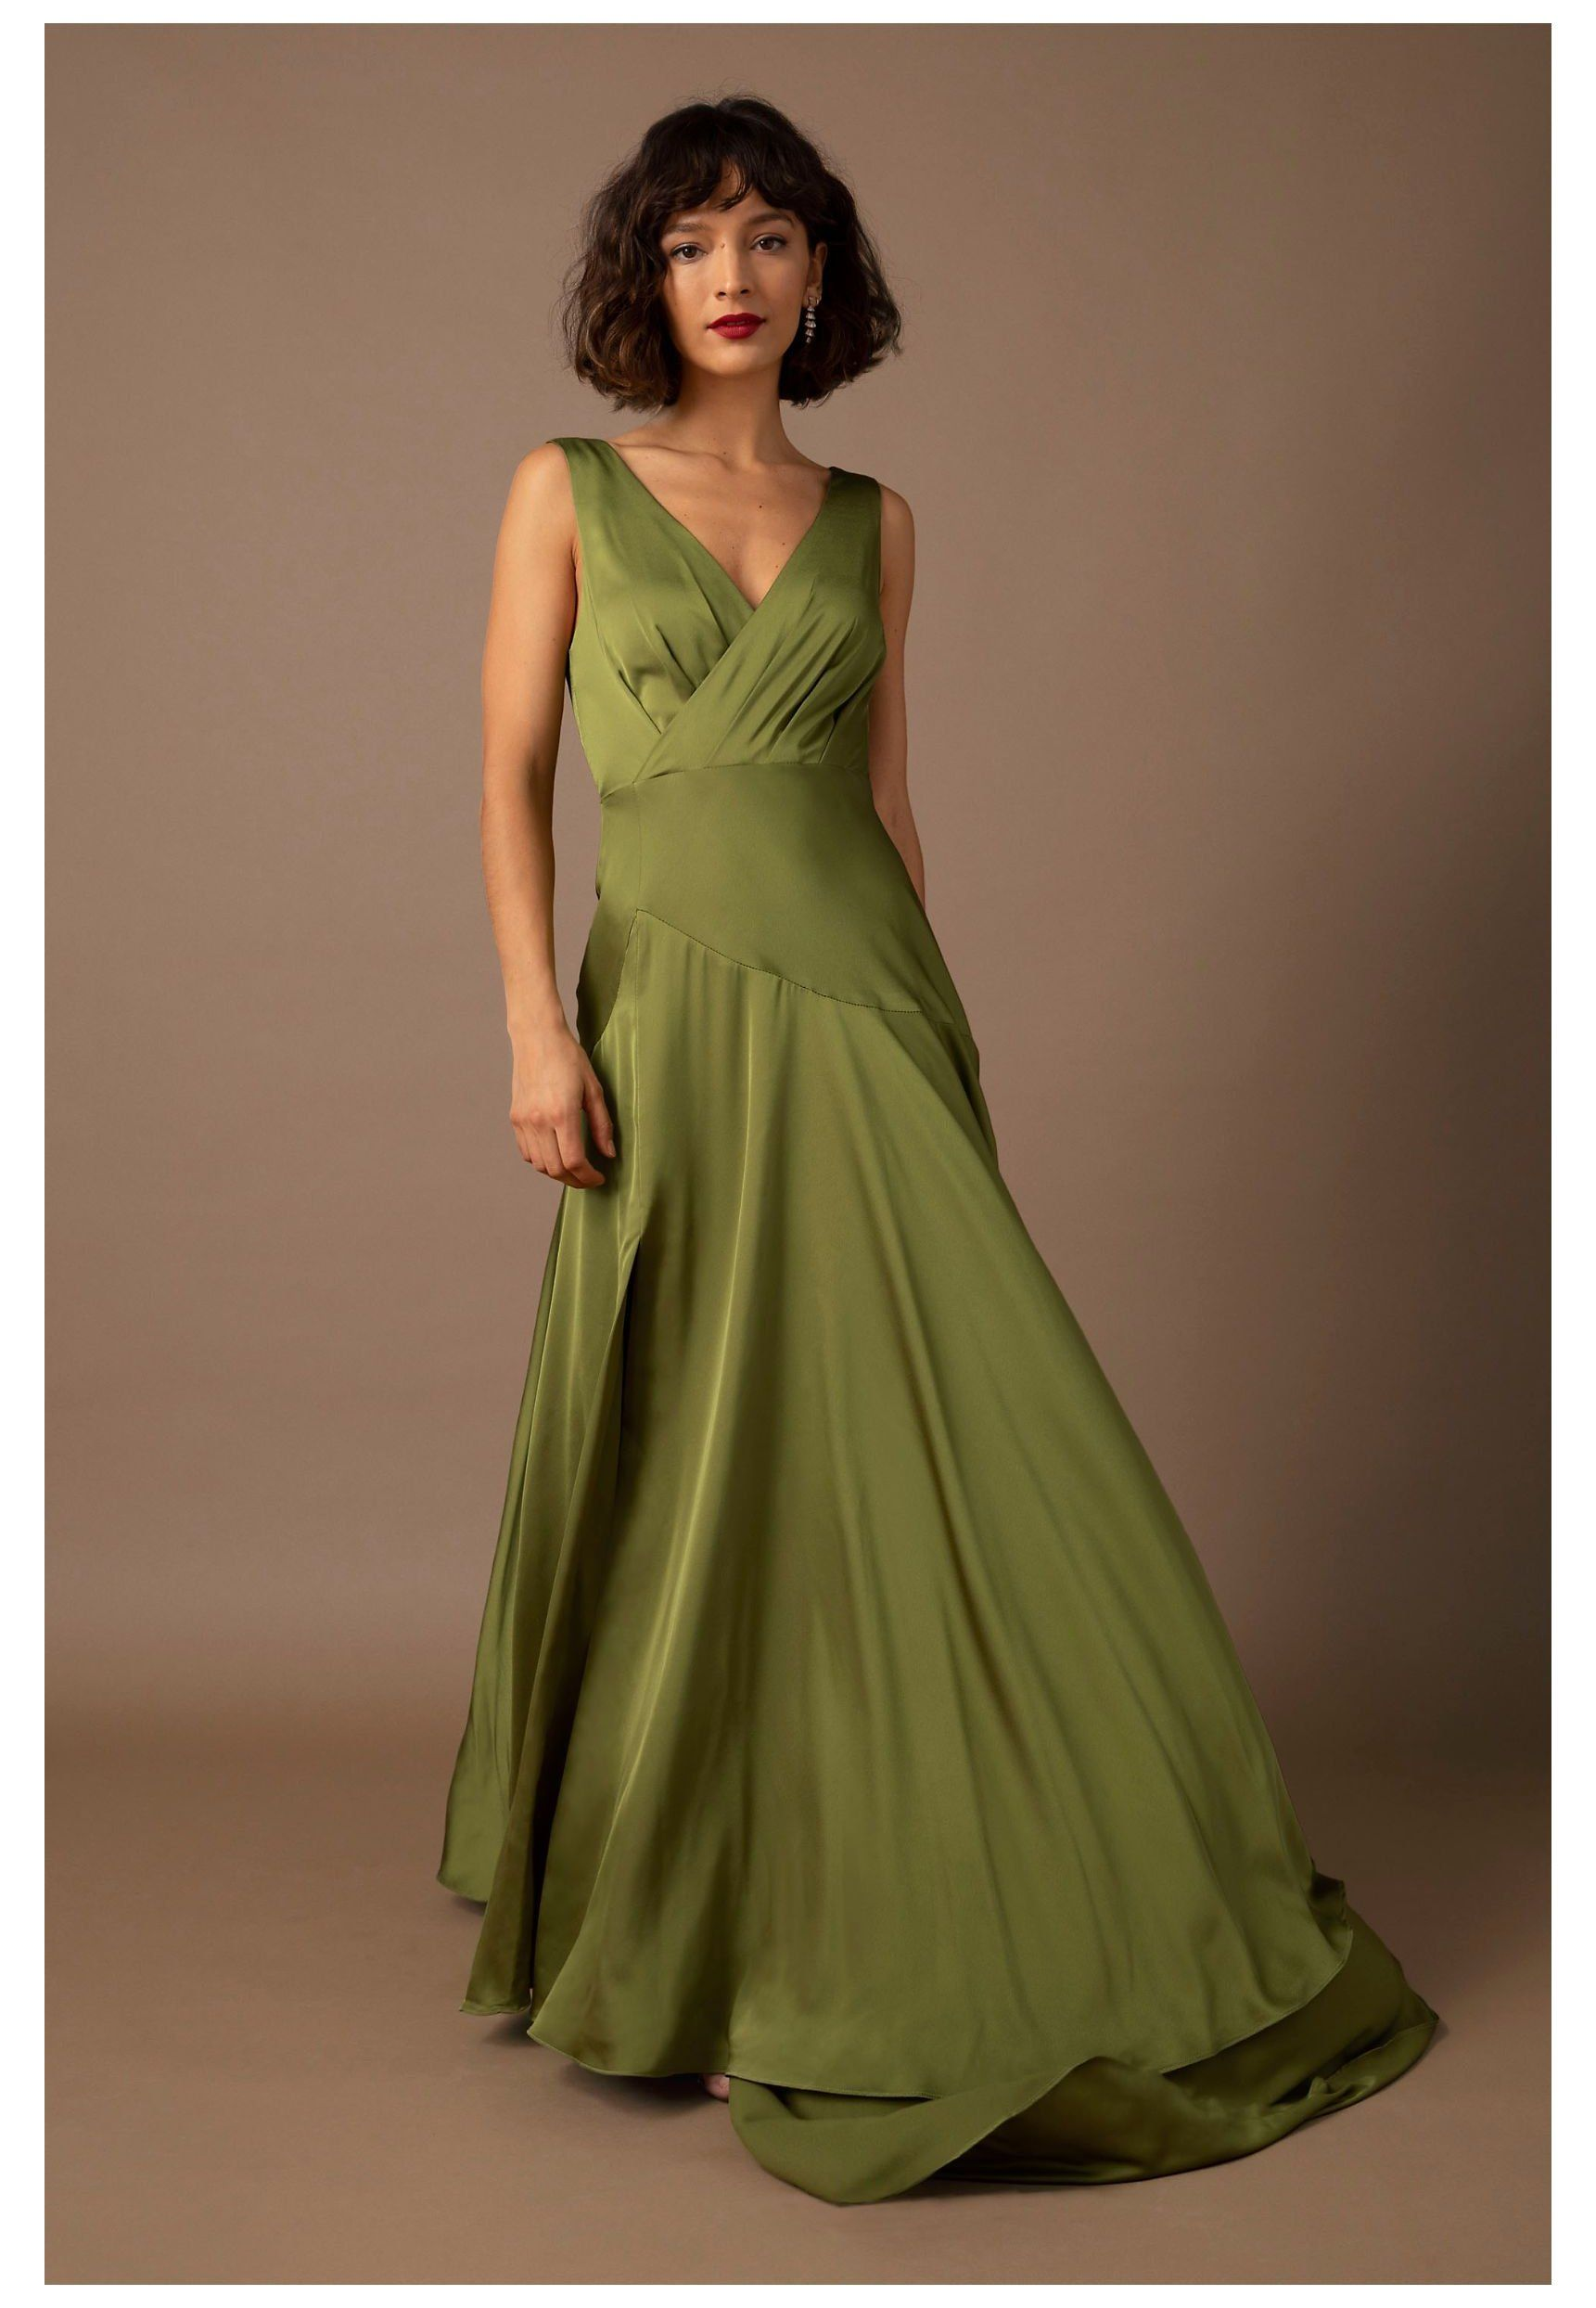 Bhldn S Fame And Partners Escala Satin V Neck Dress In Bright Olive Vintage Green Evening Gown In 2021 Green Evening Gowns Satin Dress Long Vintage Formal Dresses [ 2488 x 1721 Pixel ]